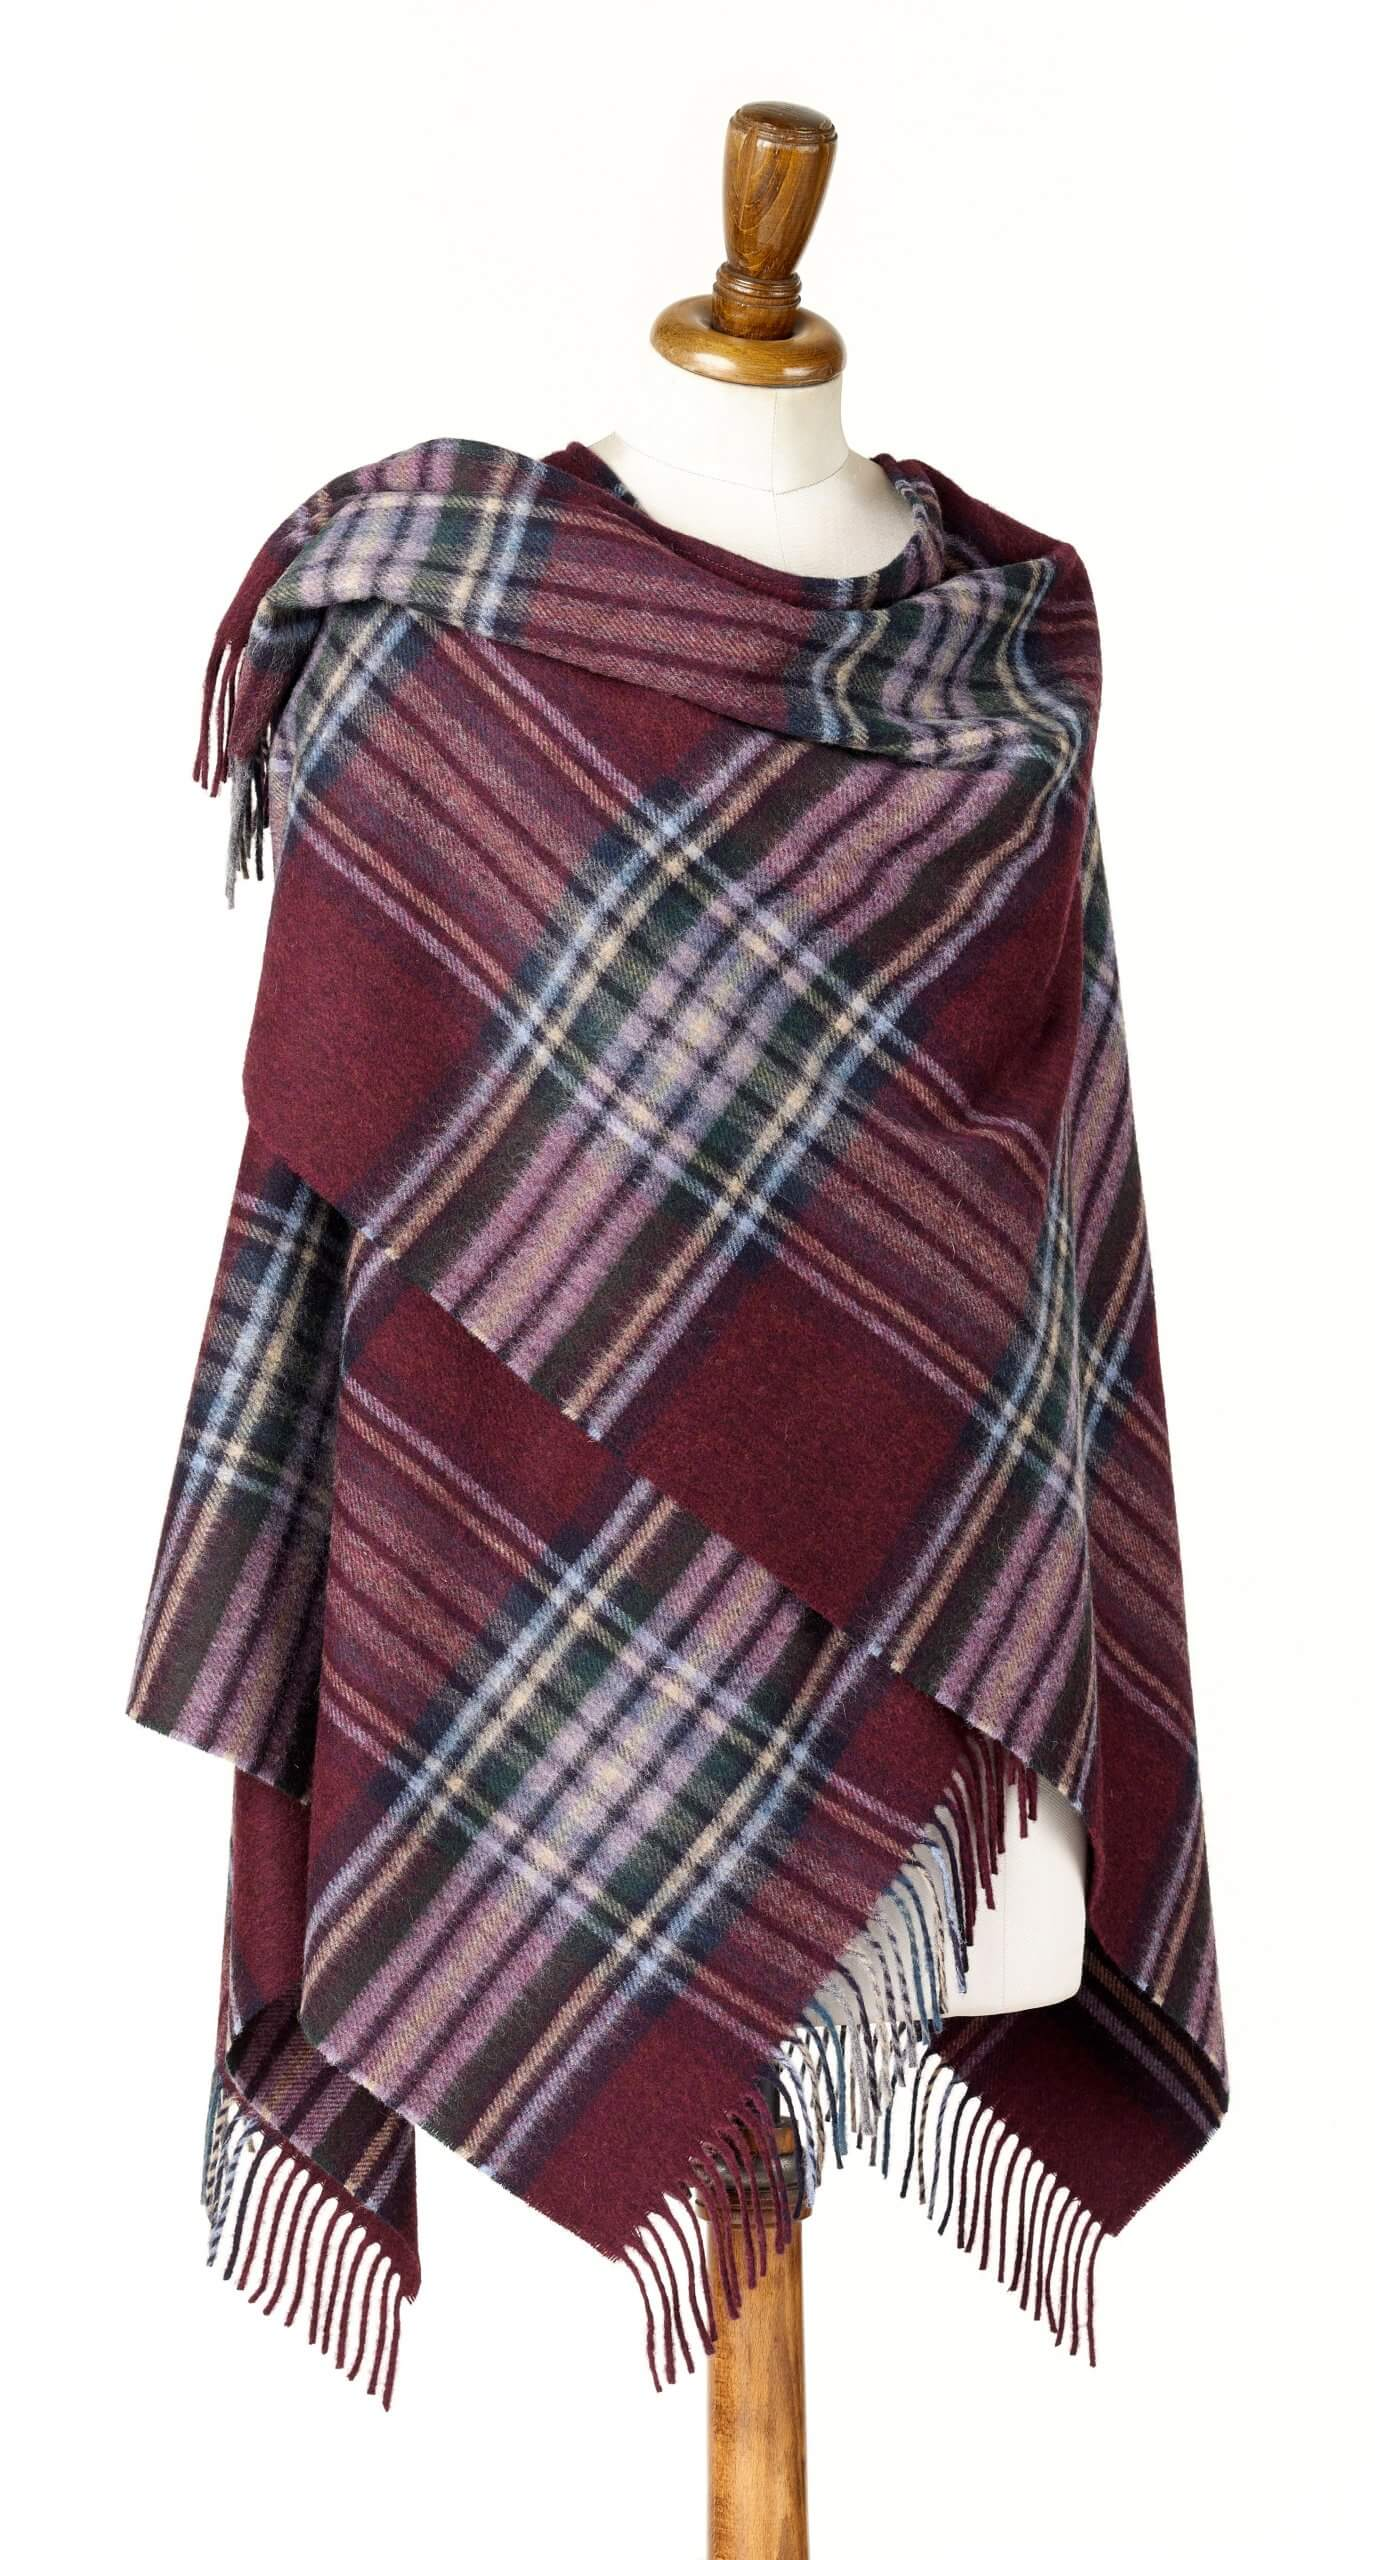 Ingleborough Burgundy Ladies Lambswool Shawl/Cape